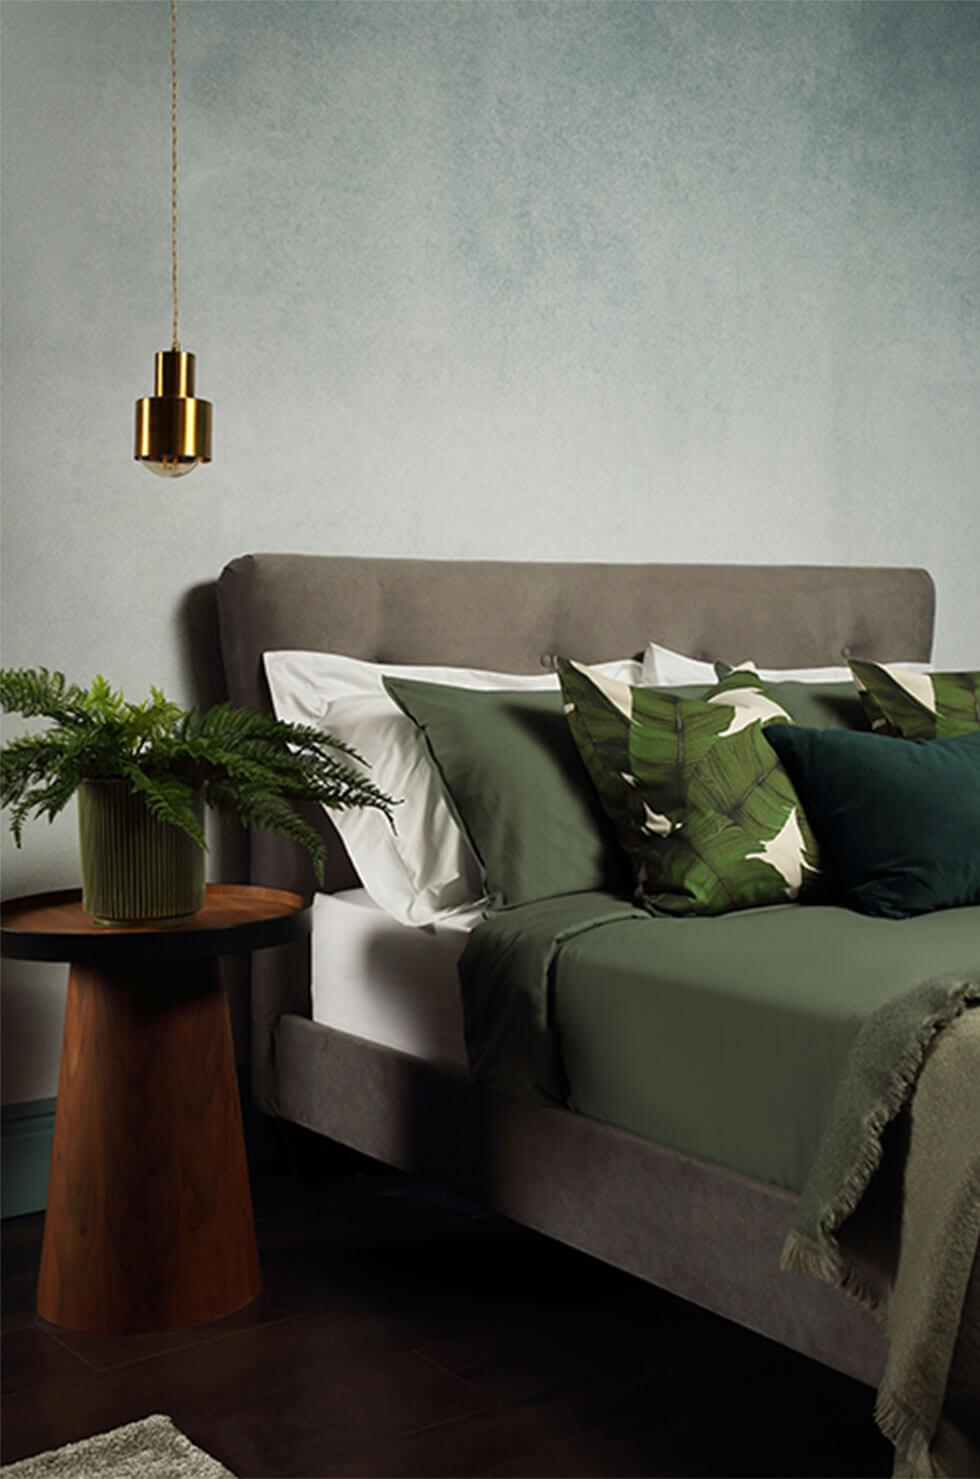 Grey velvet bed, green pillows in a grey bedroom.